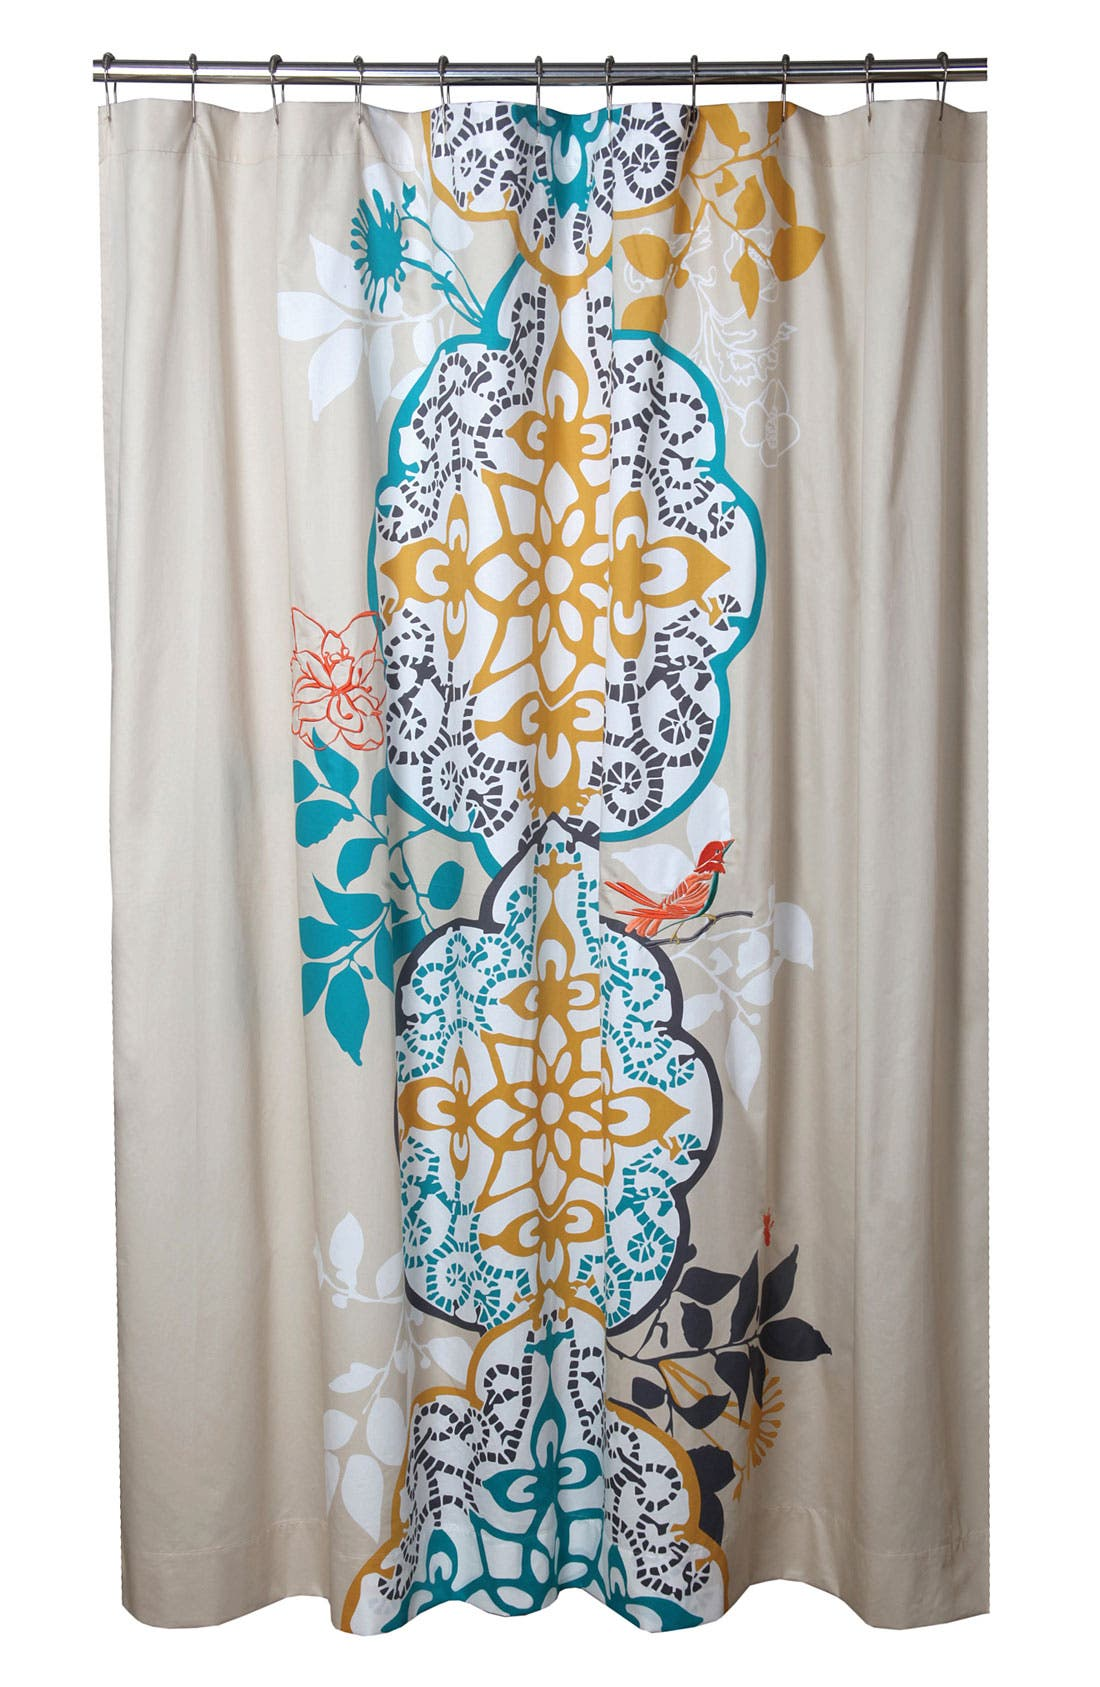 Main Image - Blissliving Home 'Shangri-La' Shower Curtain (Online Only)